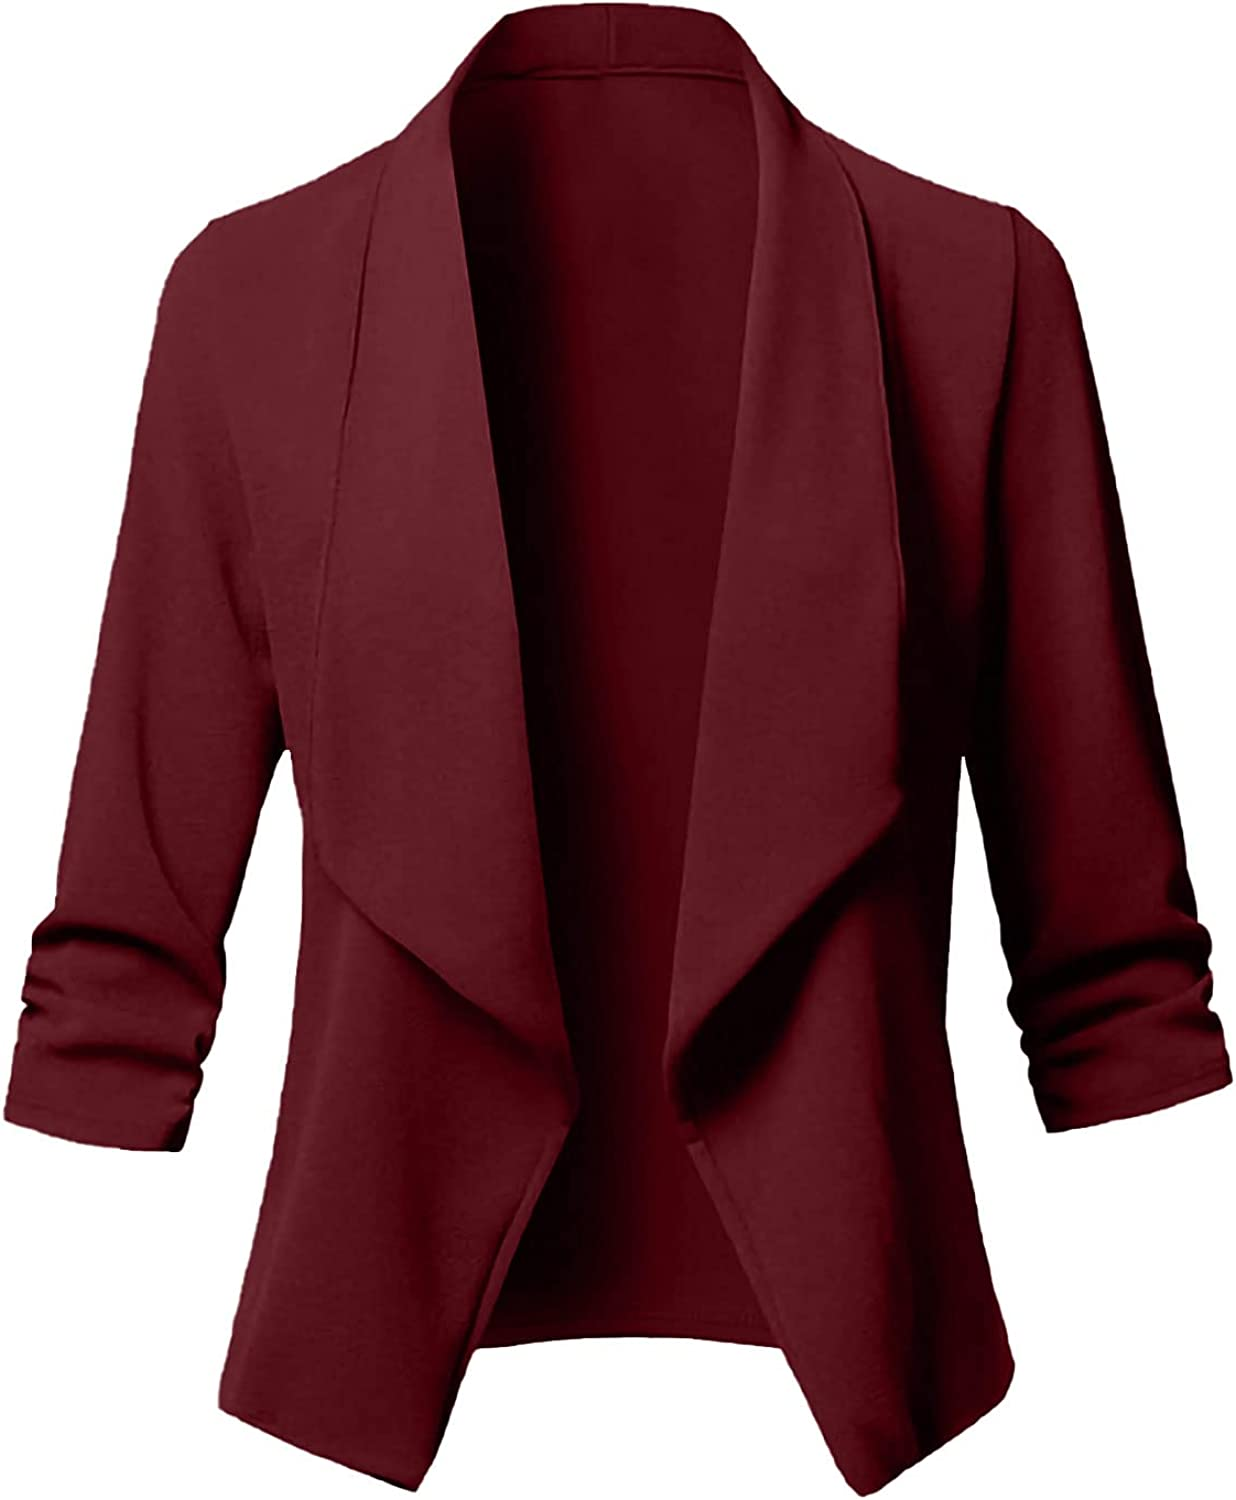 Women's Casual Blazer Cardigan Open Front Long Sleeve Solid Color Jacket Plus Size All-Match Cropped Suit Coat